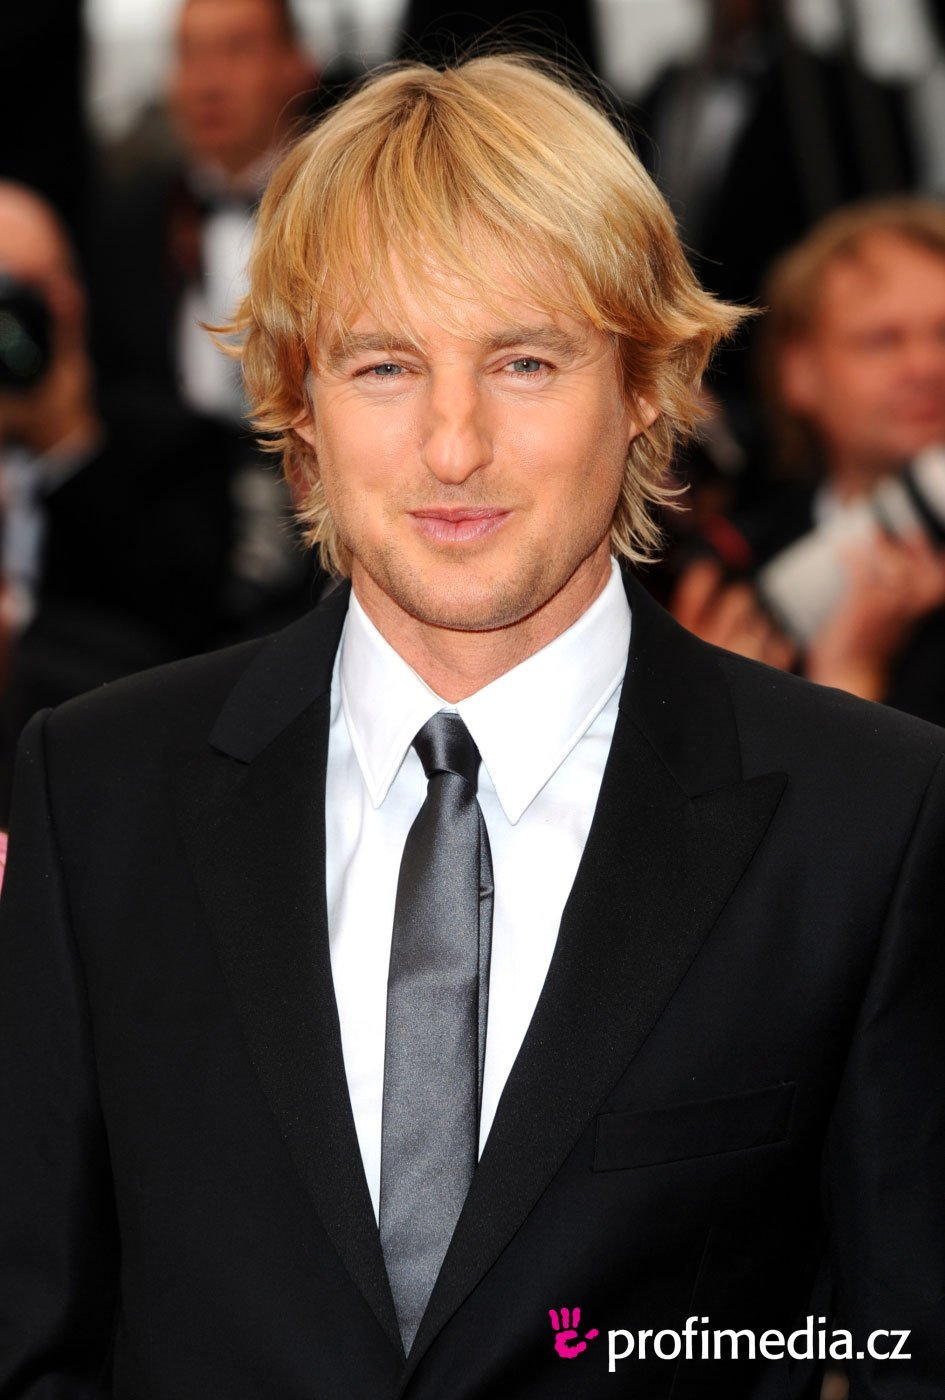 The Best Owen Wilson Hairstyle Easyhairstyler Pictures